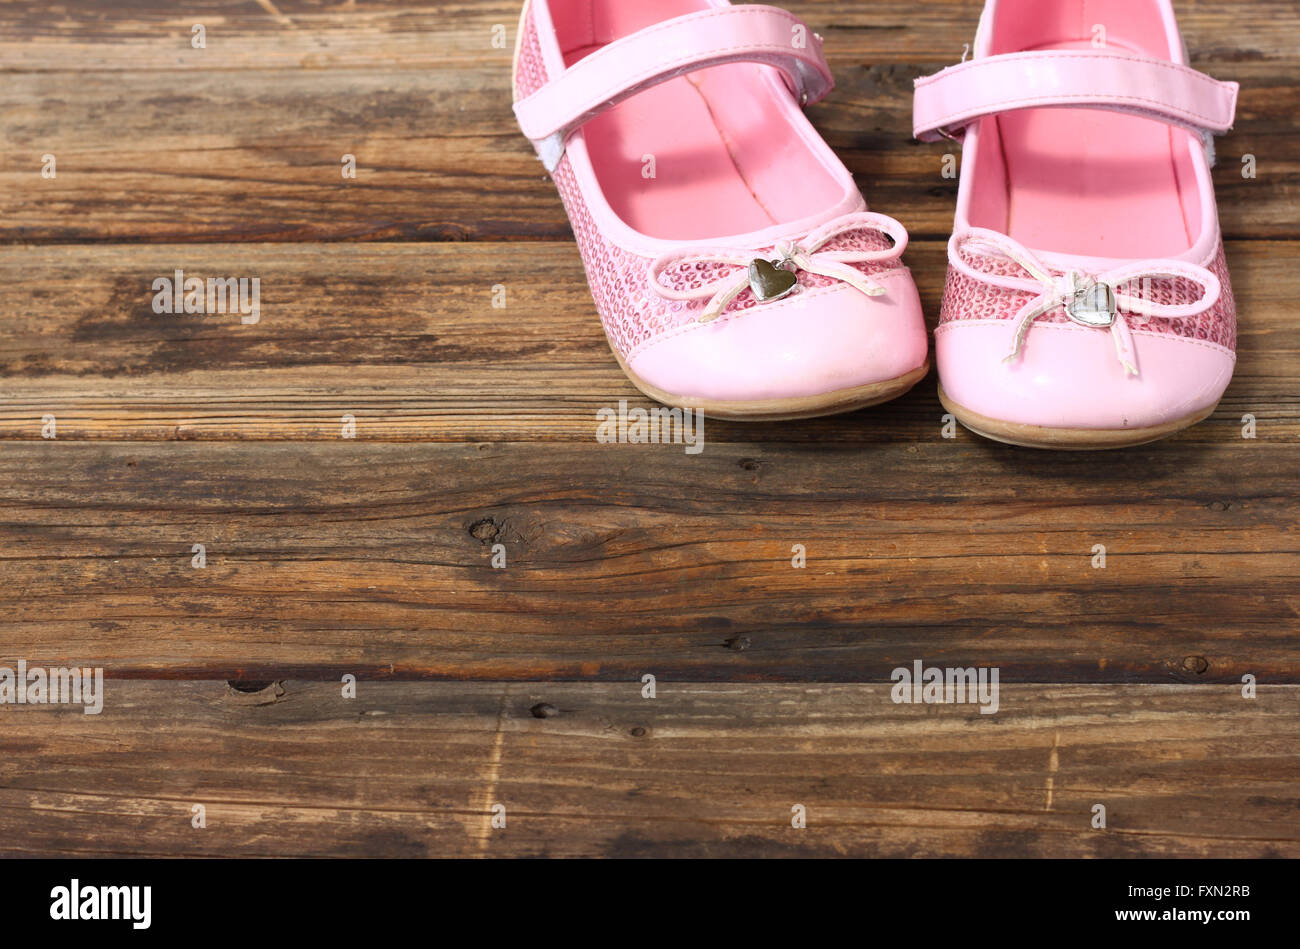 girl shoes over wooden deck floor. - Stock Image